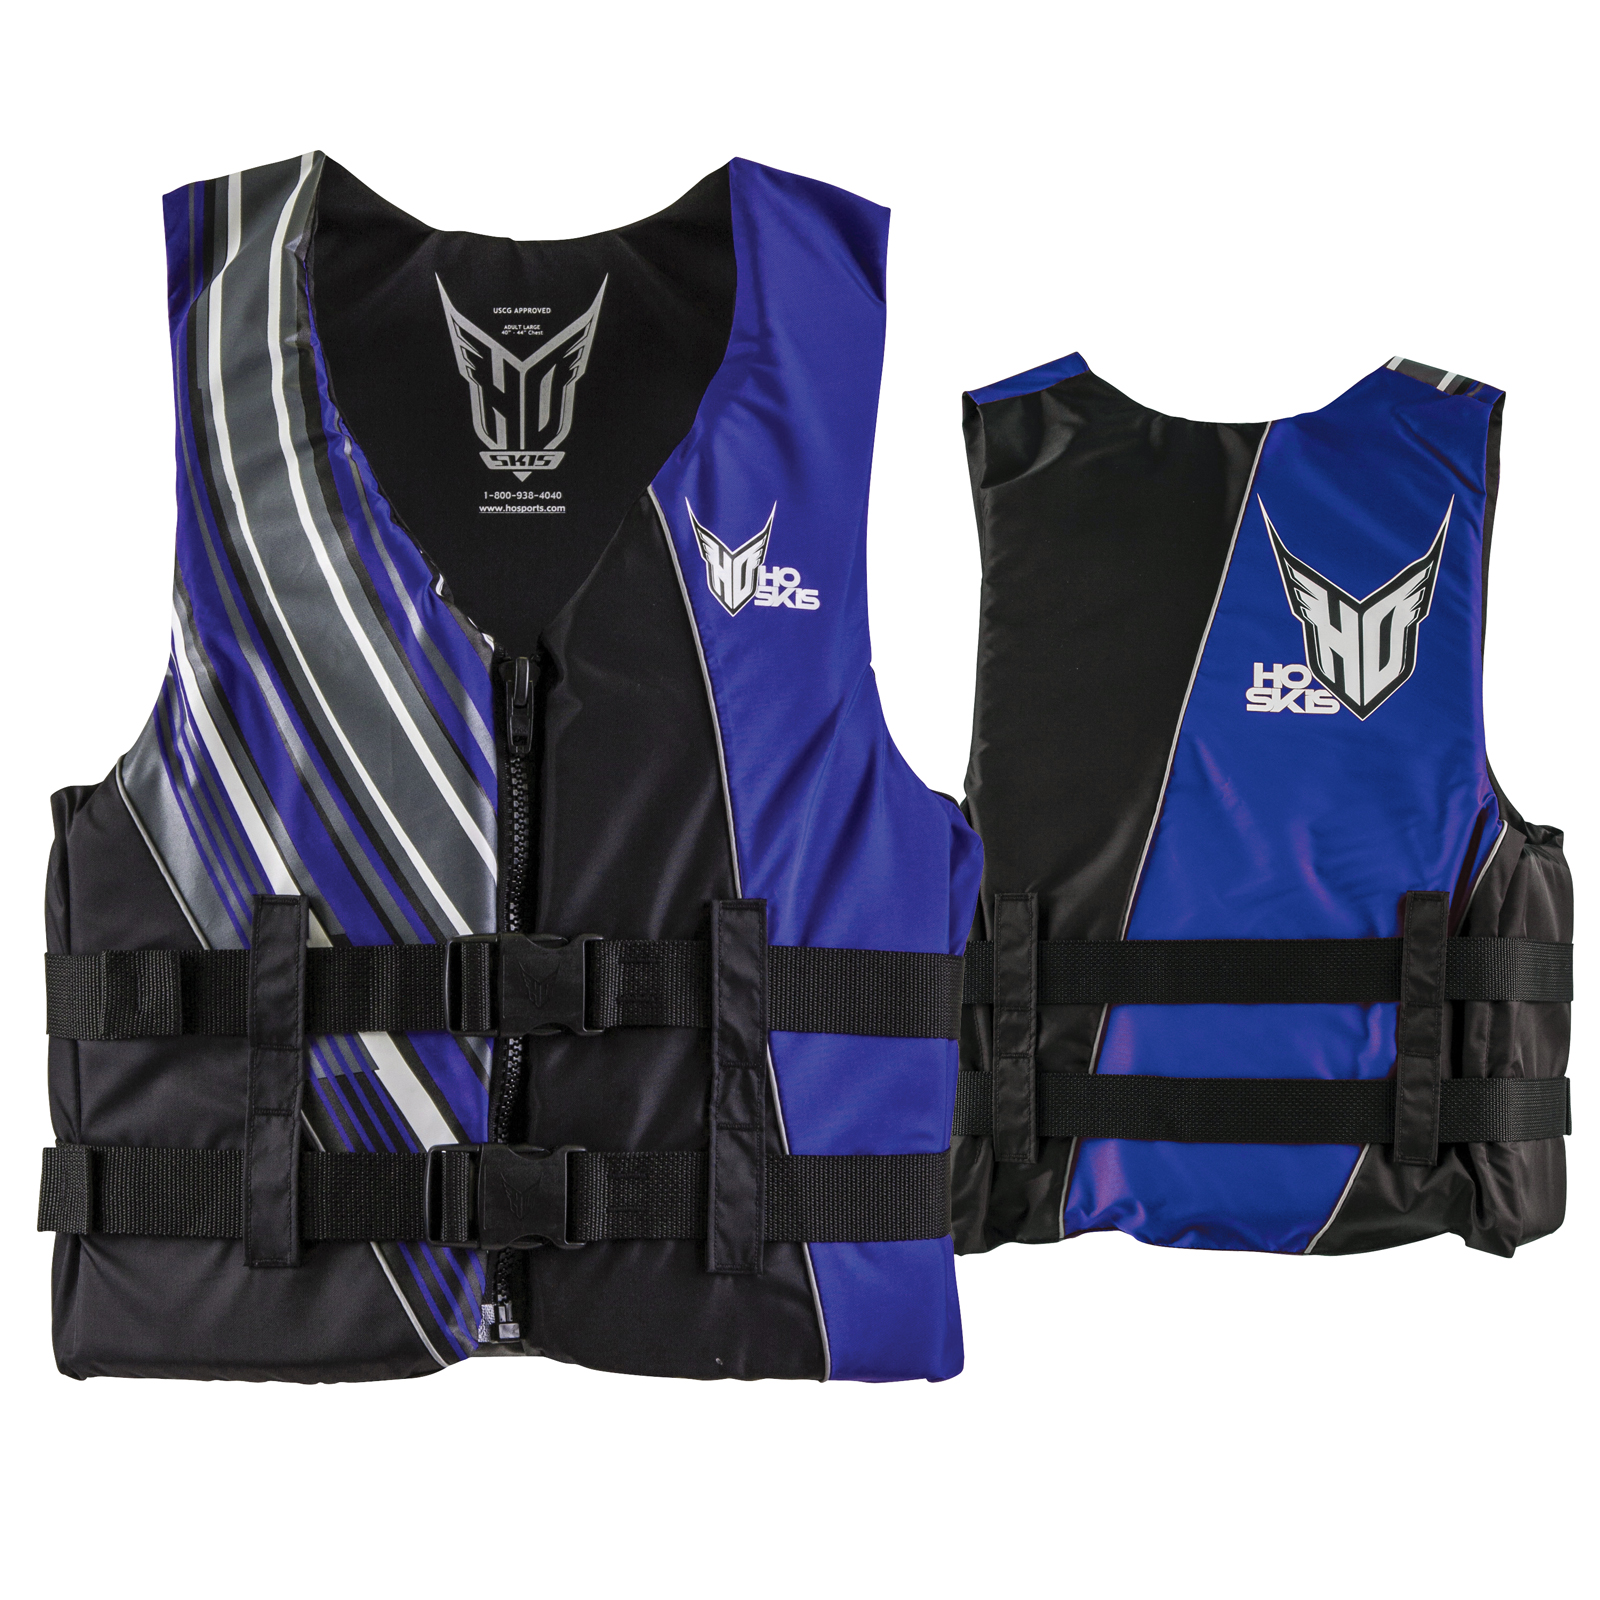 MENS INFINITE VEST TALL BLACK/BLUE HO SPORTS 2017